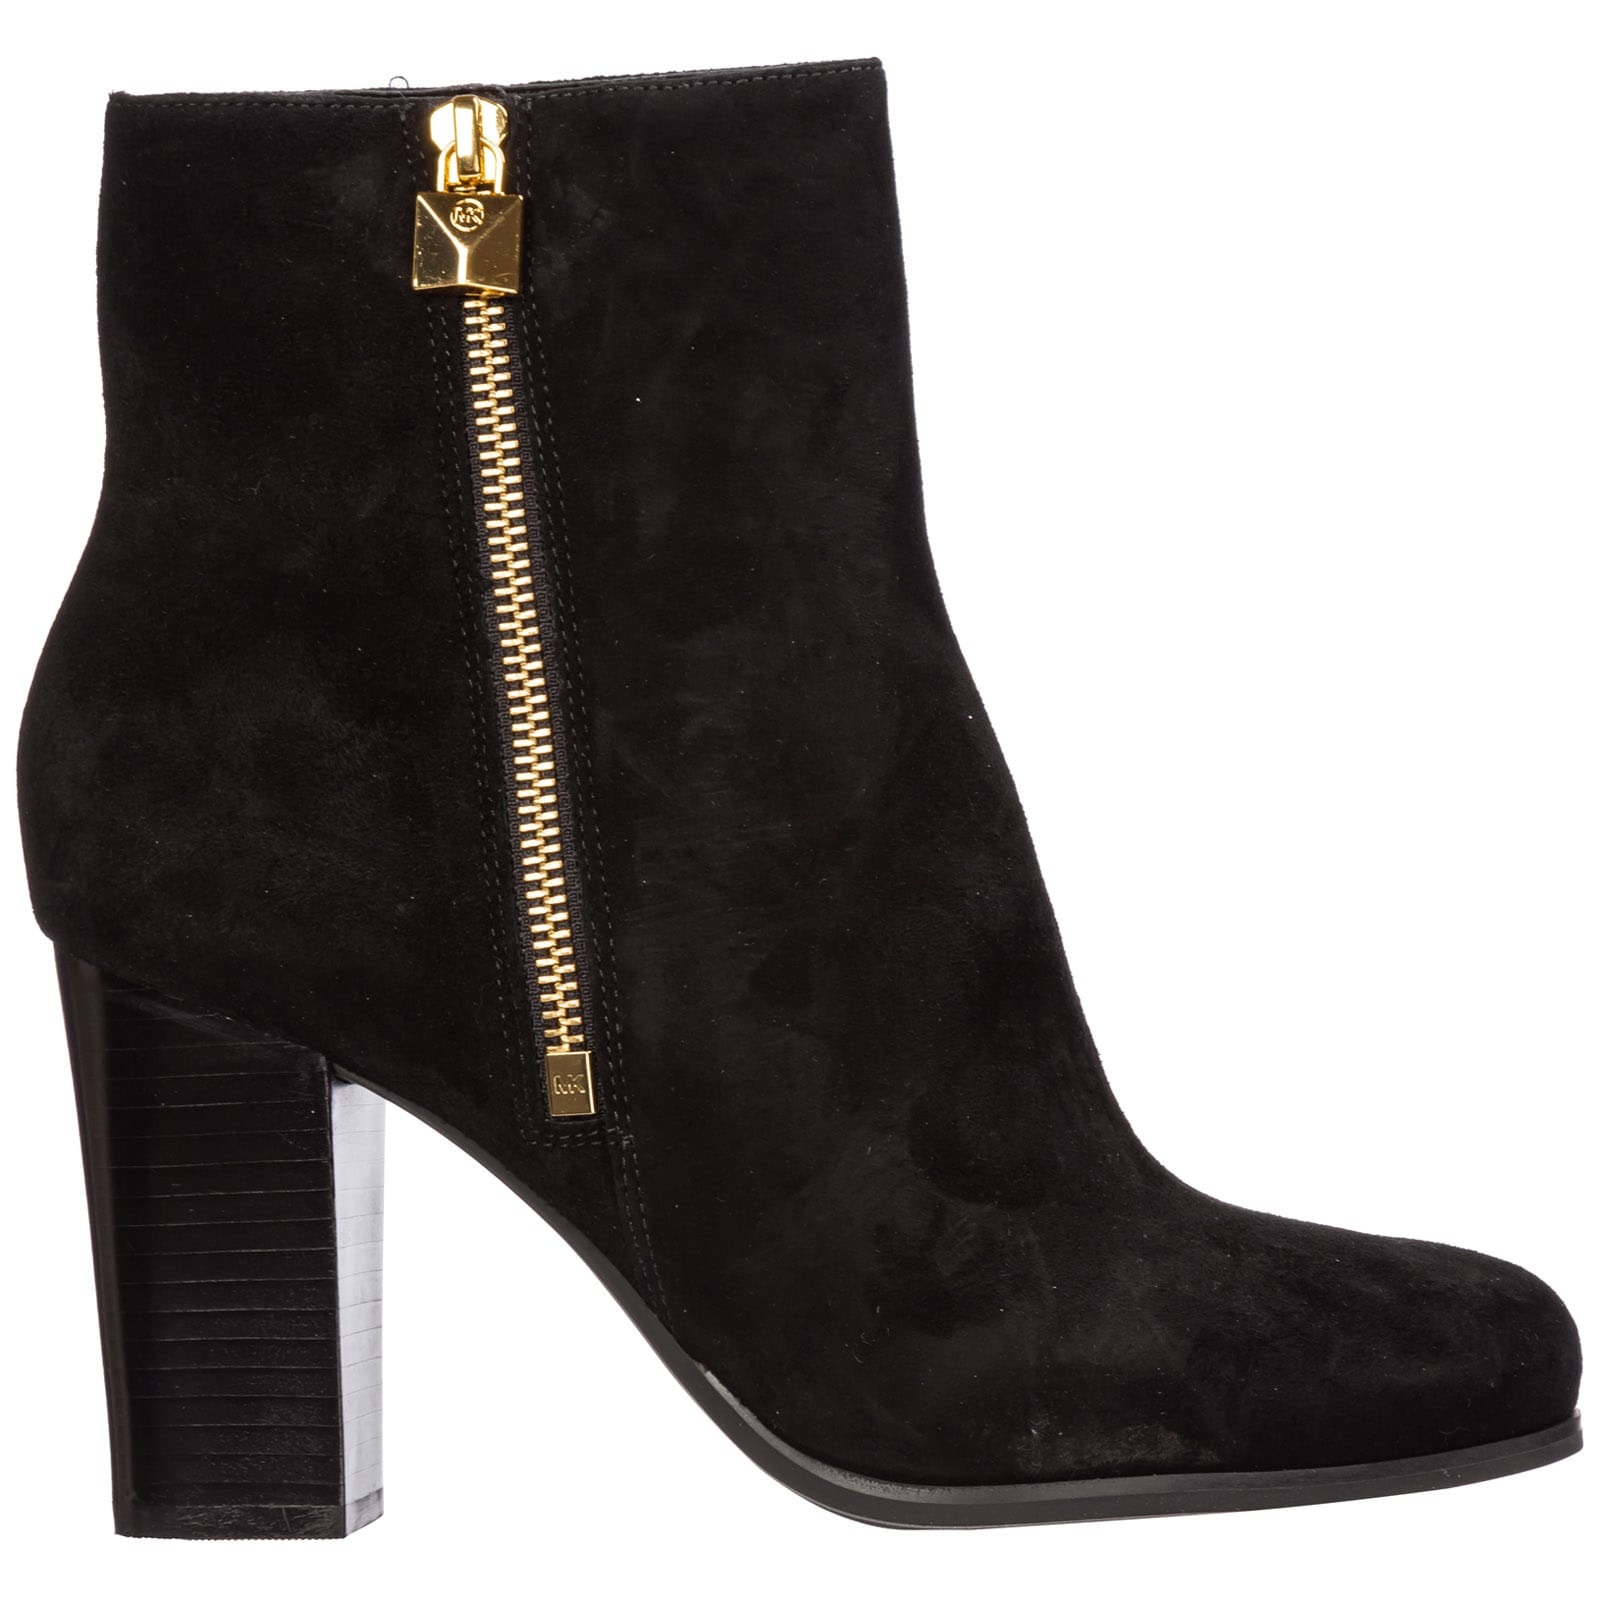 Michael Kors Boots FRENCHIE HEELED ANKLE BOOTS